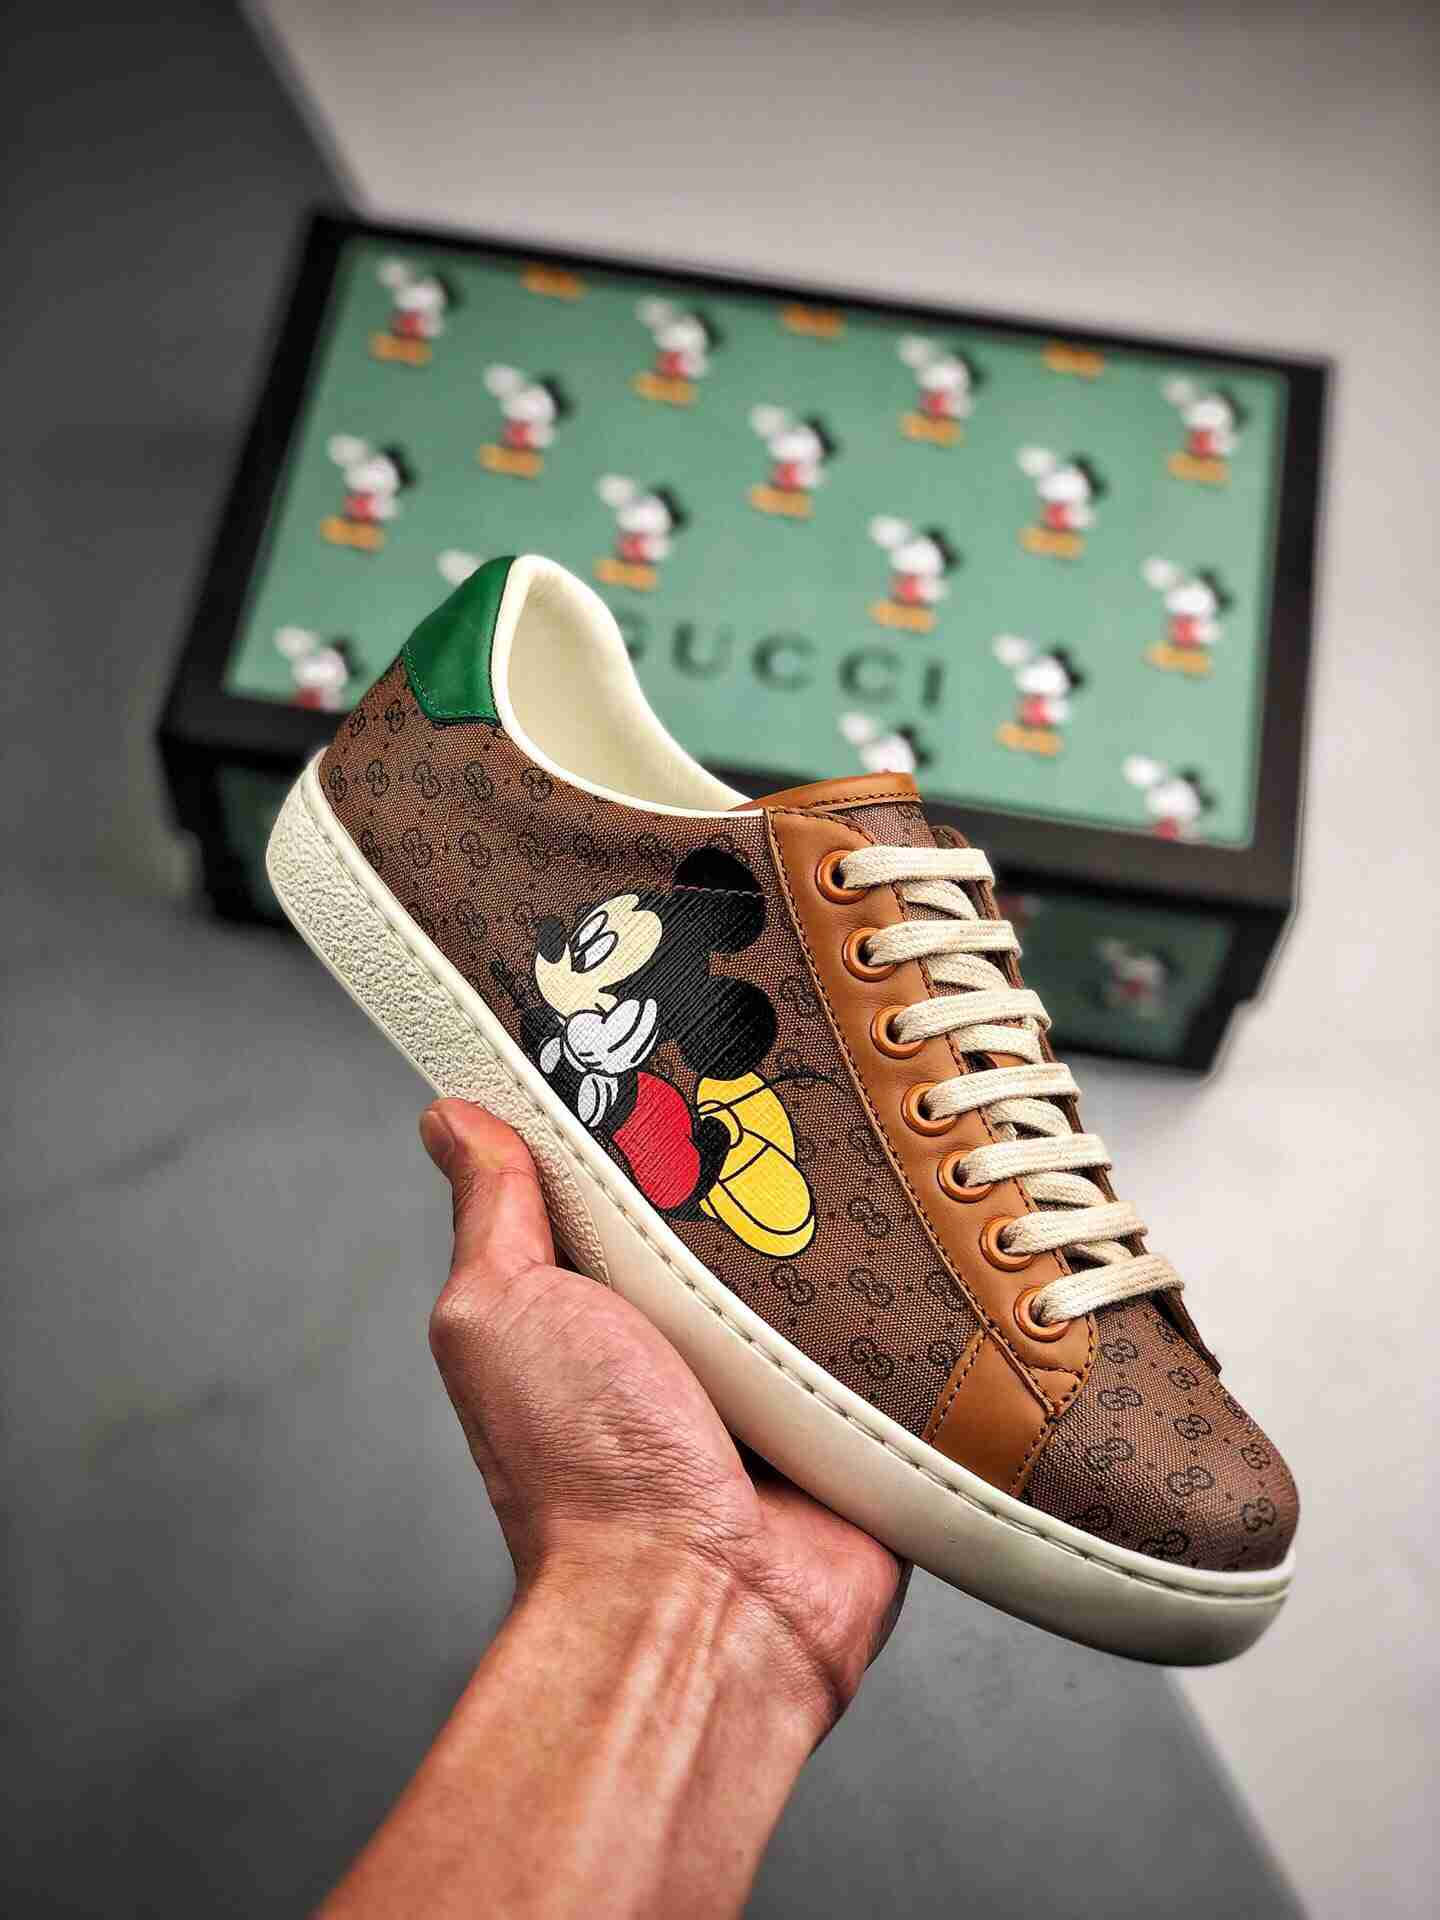 GUCCI Ace Embroidered Low-Top 迪士尼联名 米老鼠90周年限定